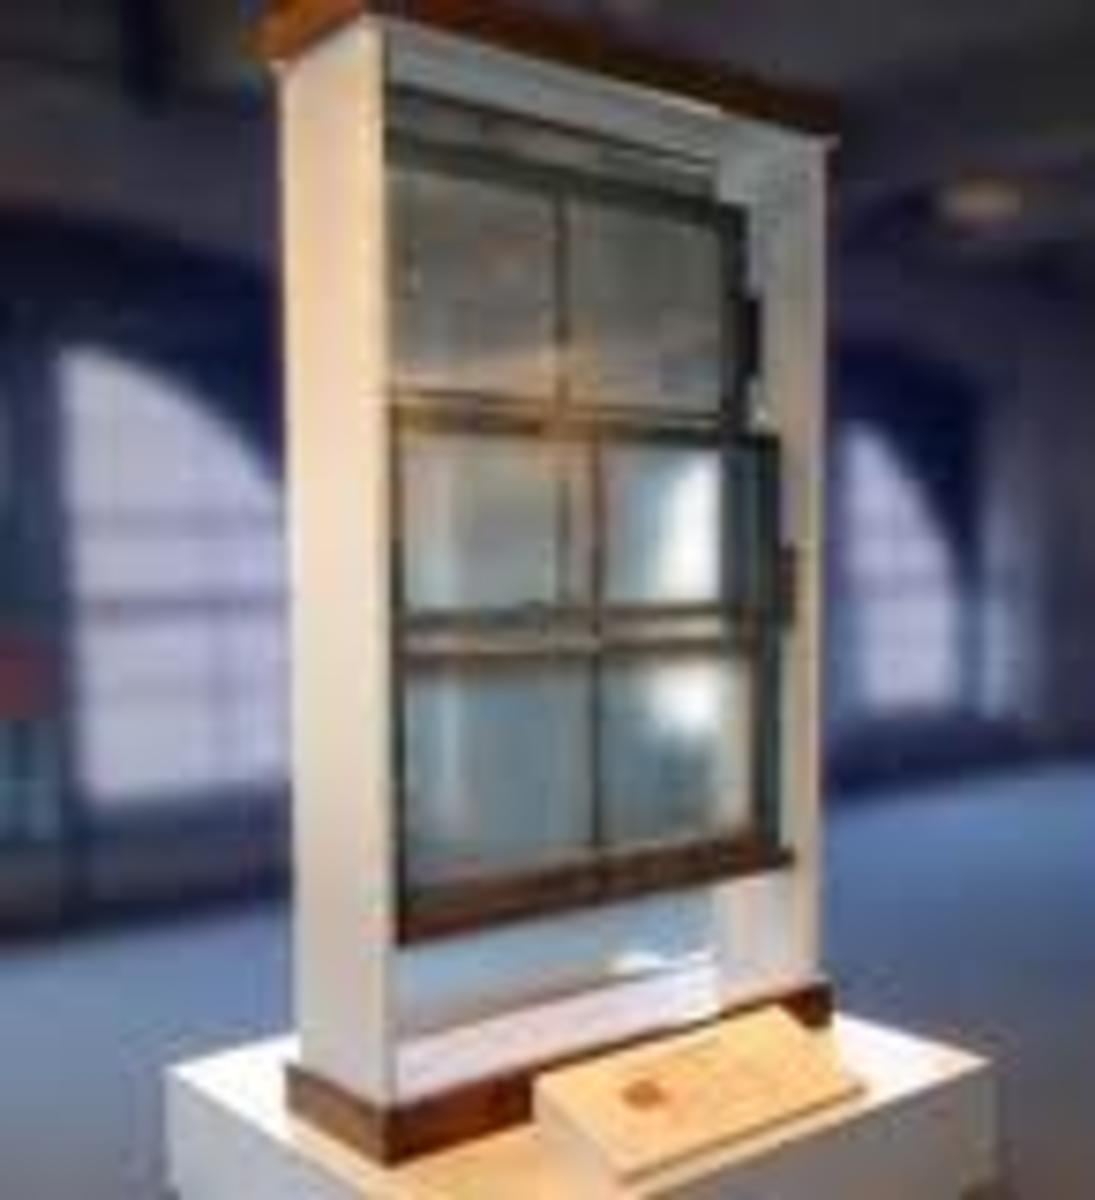 Pulled from the building, the window and frame that Lee Harvey Oswald used.